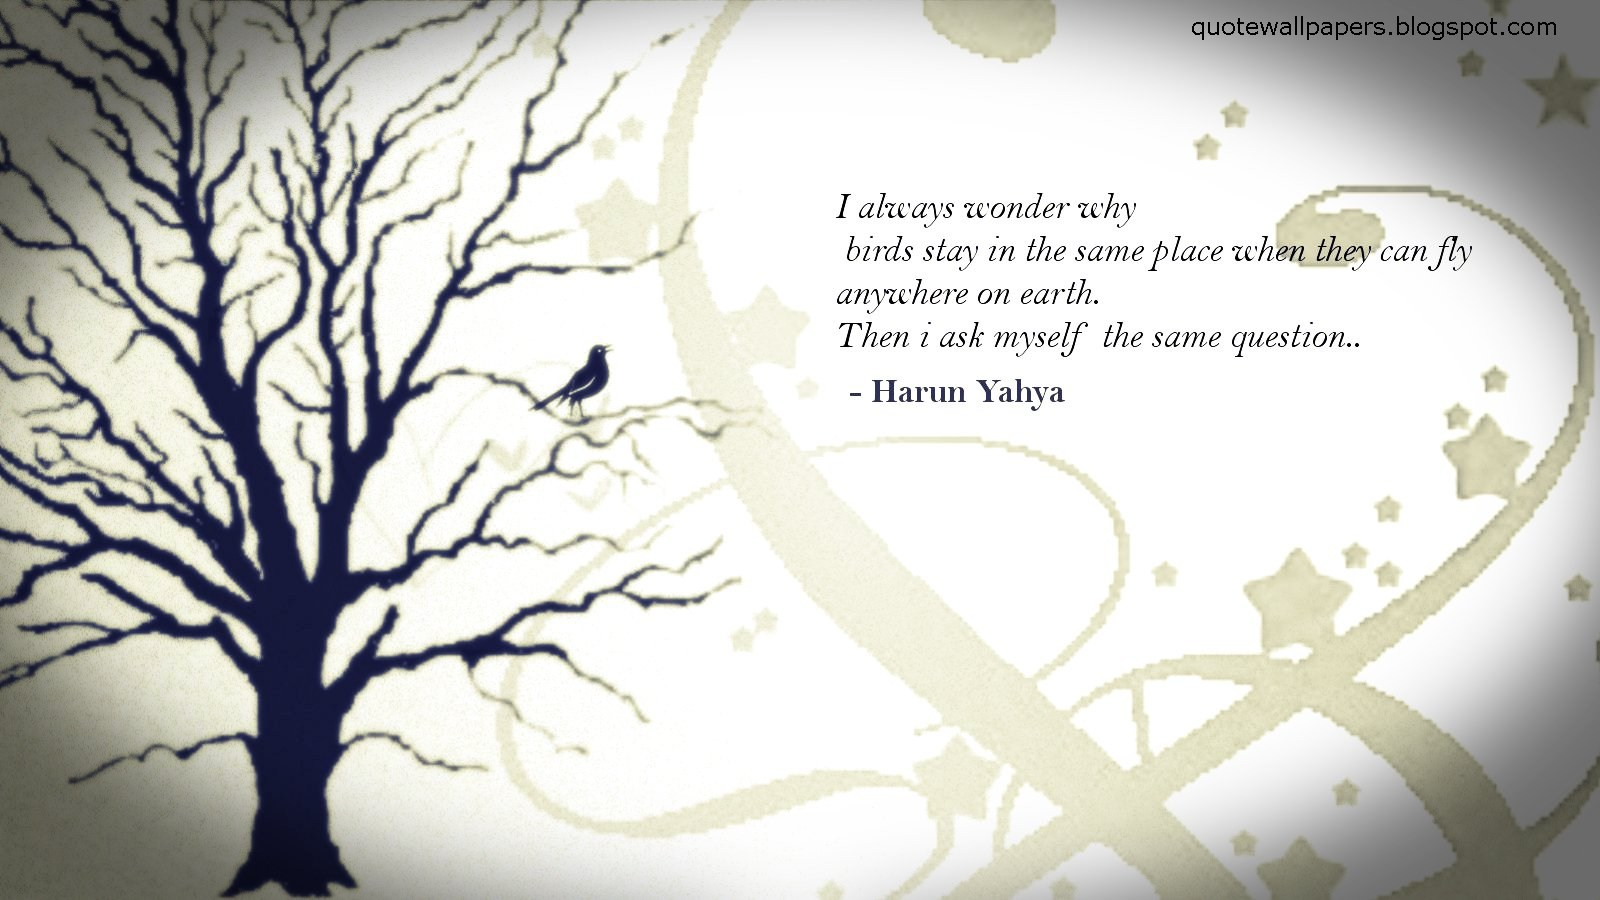 I always wonder why birds stay in the same place when they can fly anywhere on earth. ~Harun Yahya